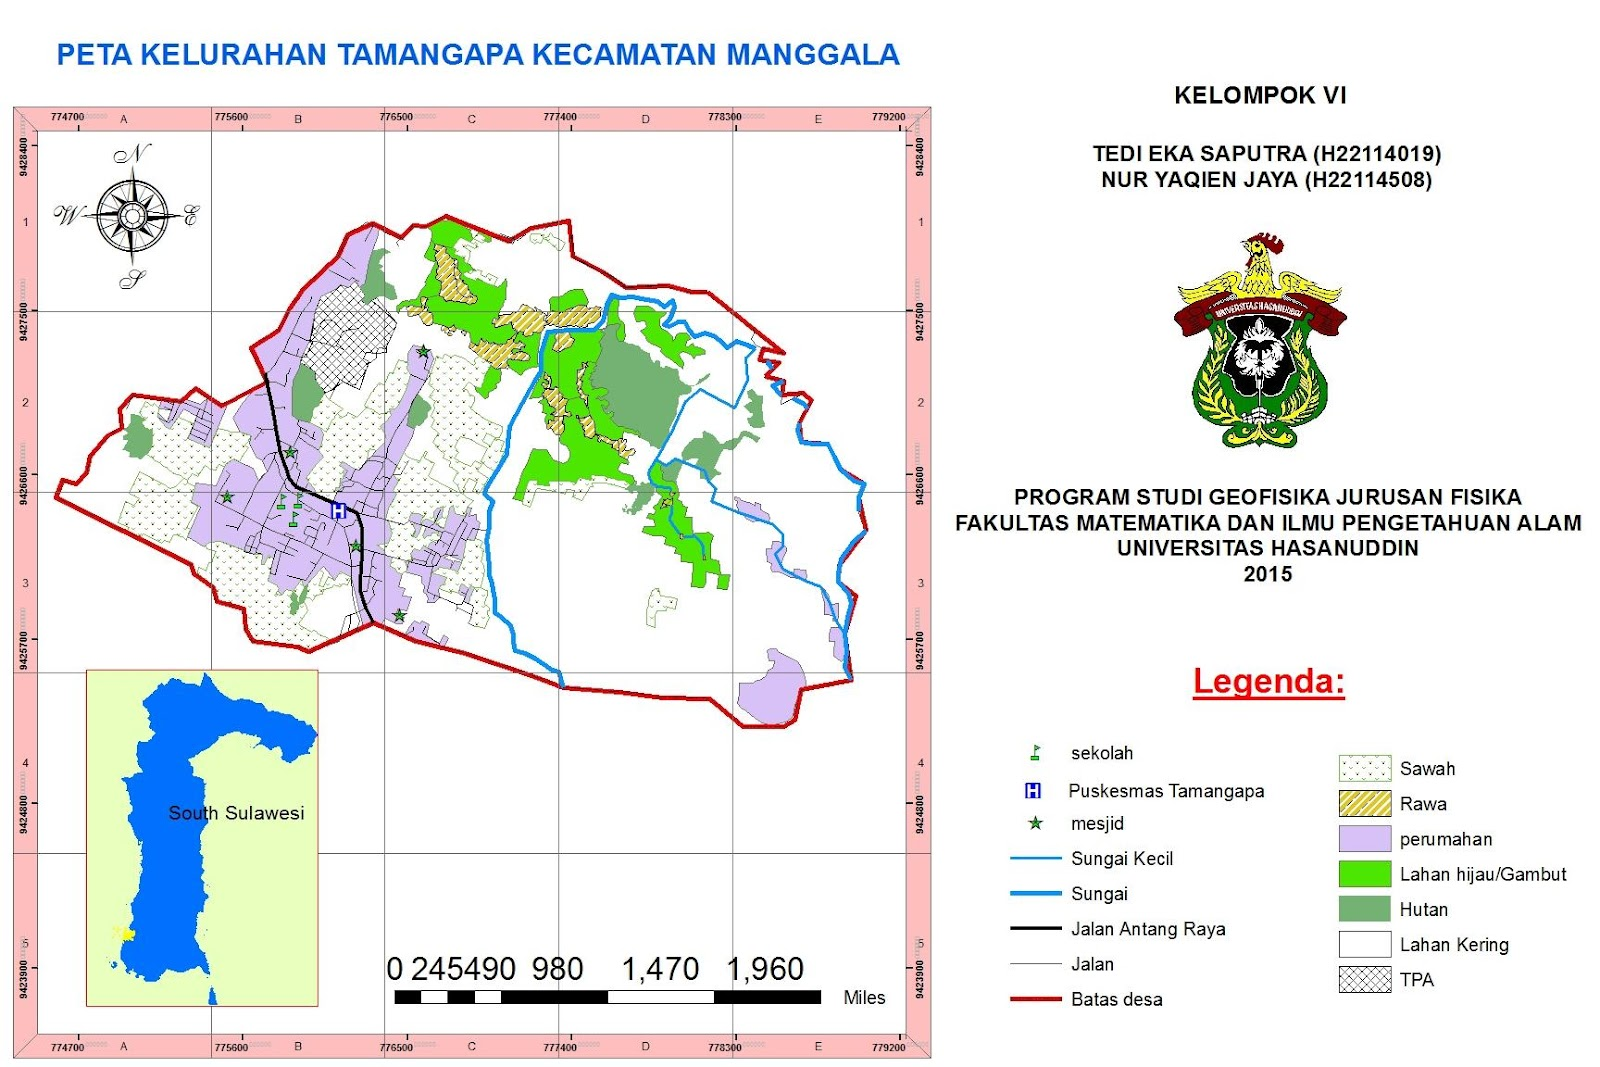 Hasil digitasi arcgis